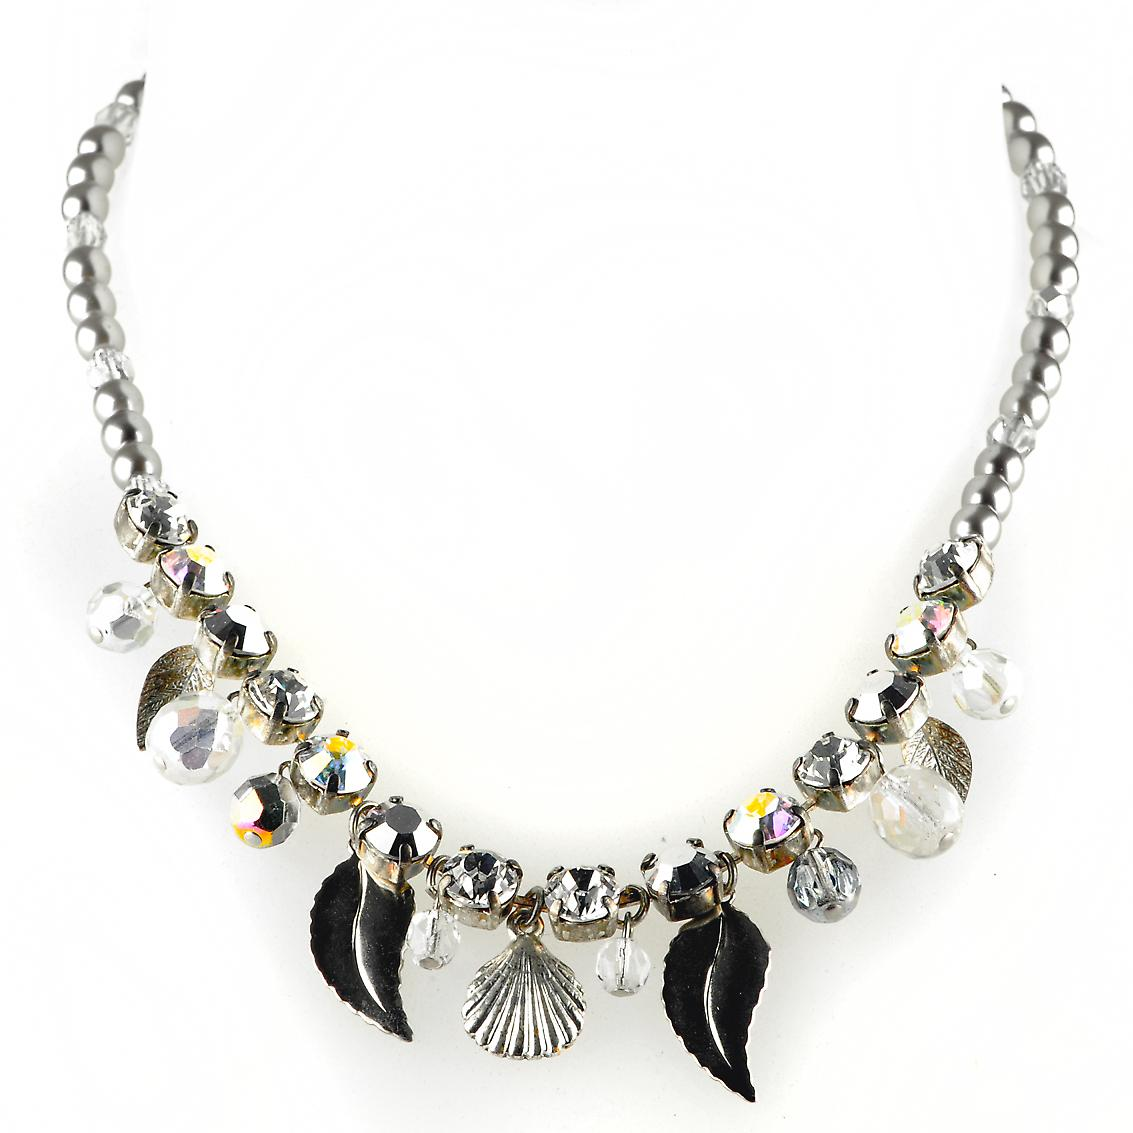 Waooh - Fashion Jewellery - WJ0320 - Style Necklace with Swarovski Diamonds - Old Elements in Silver - Metal Beads Colour